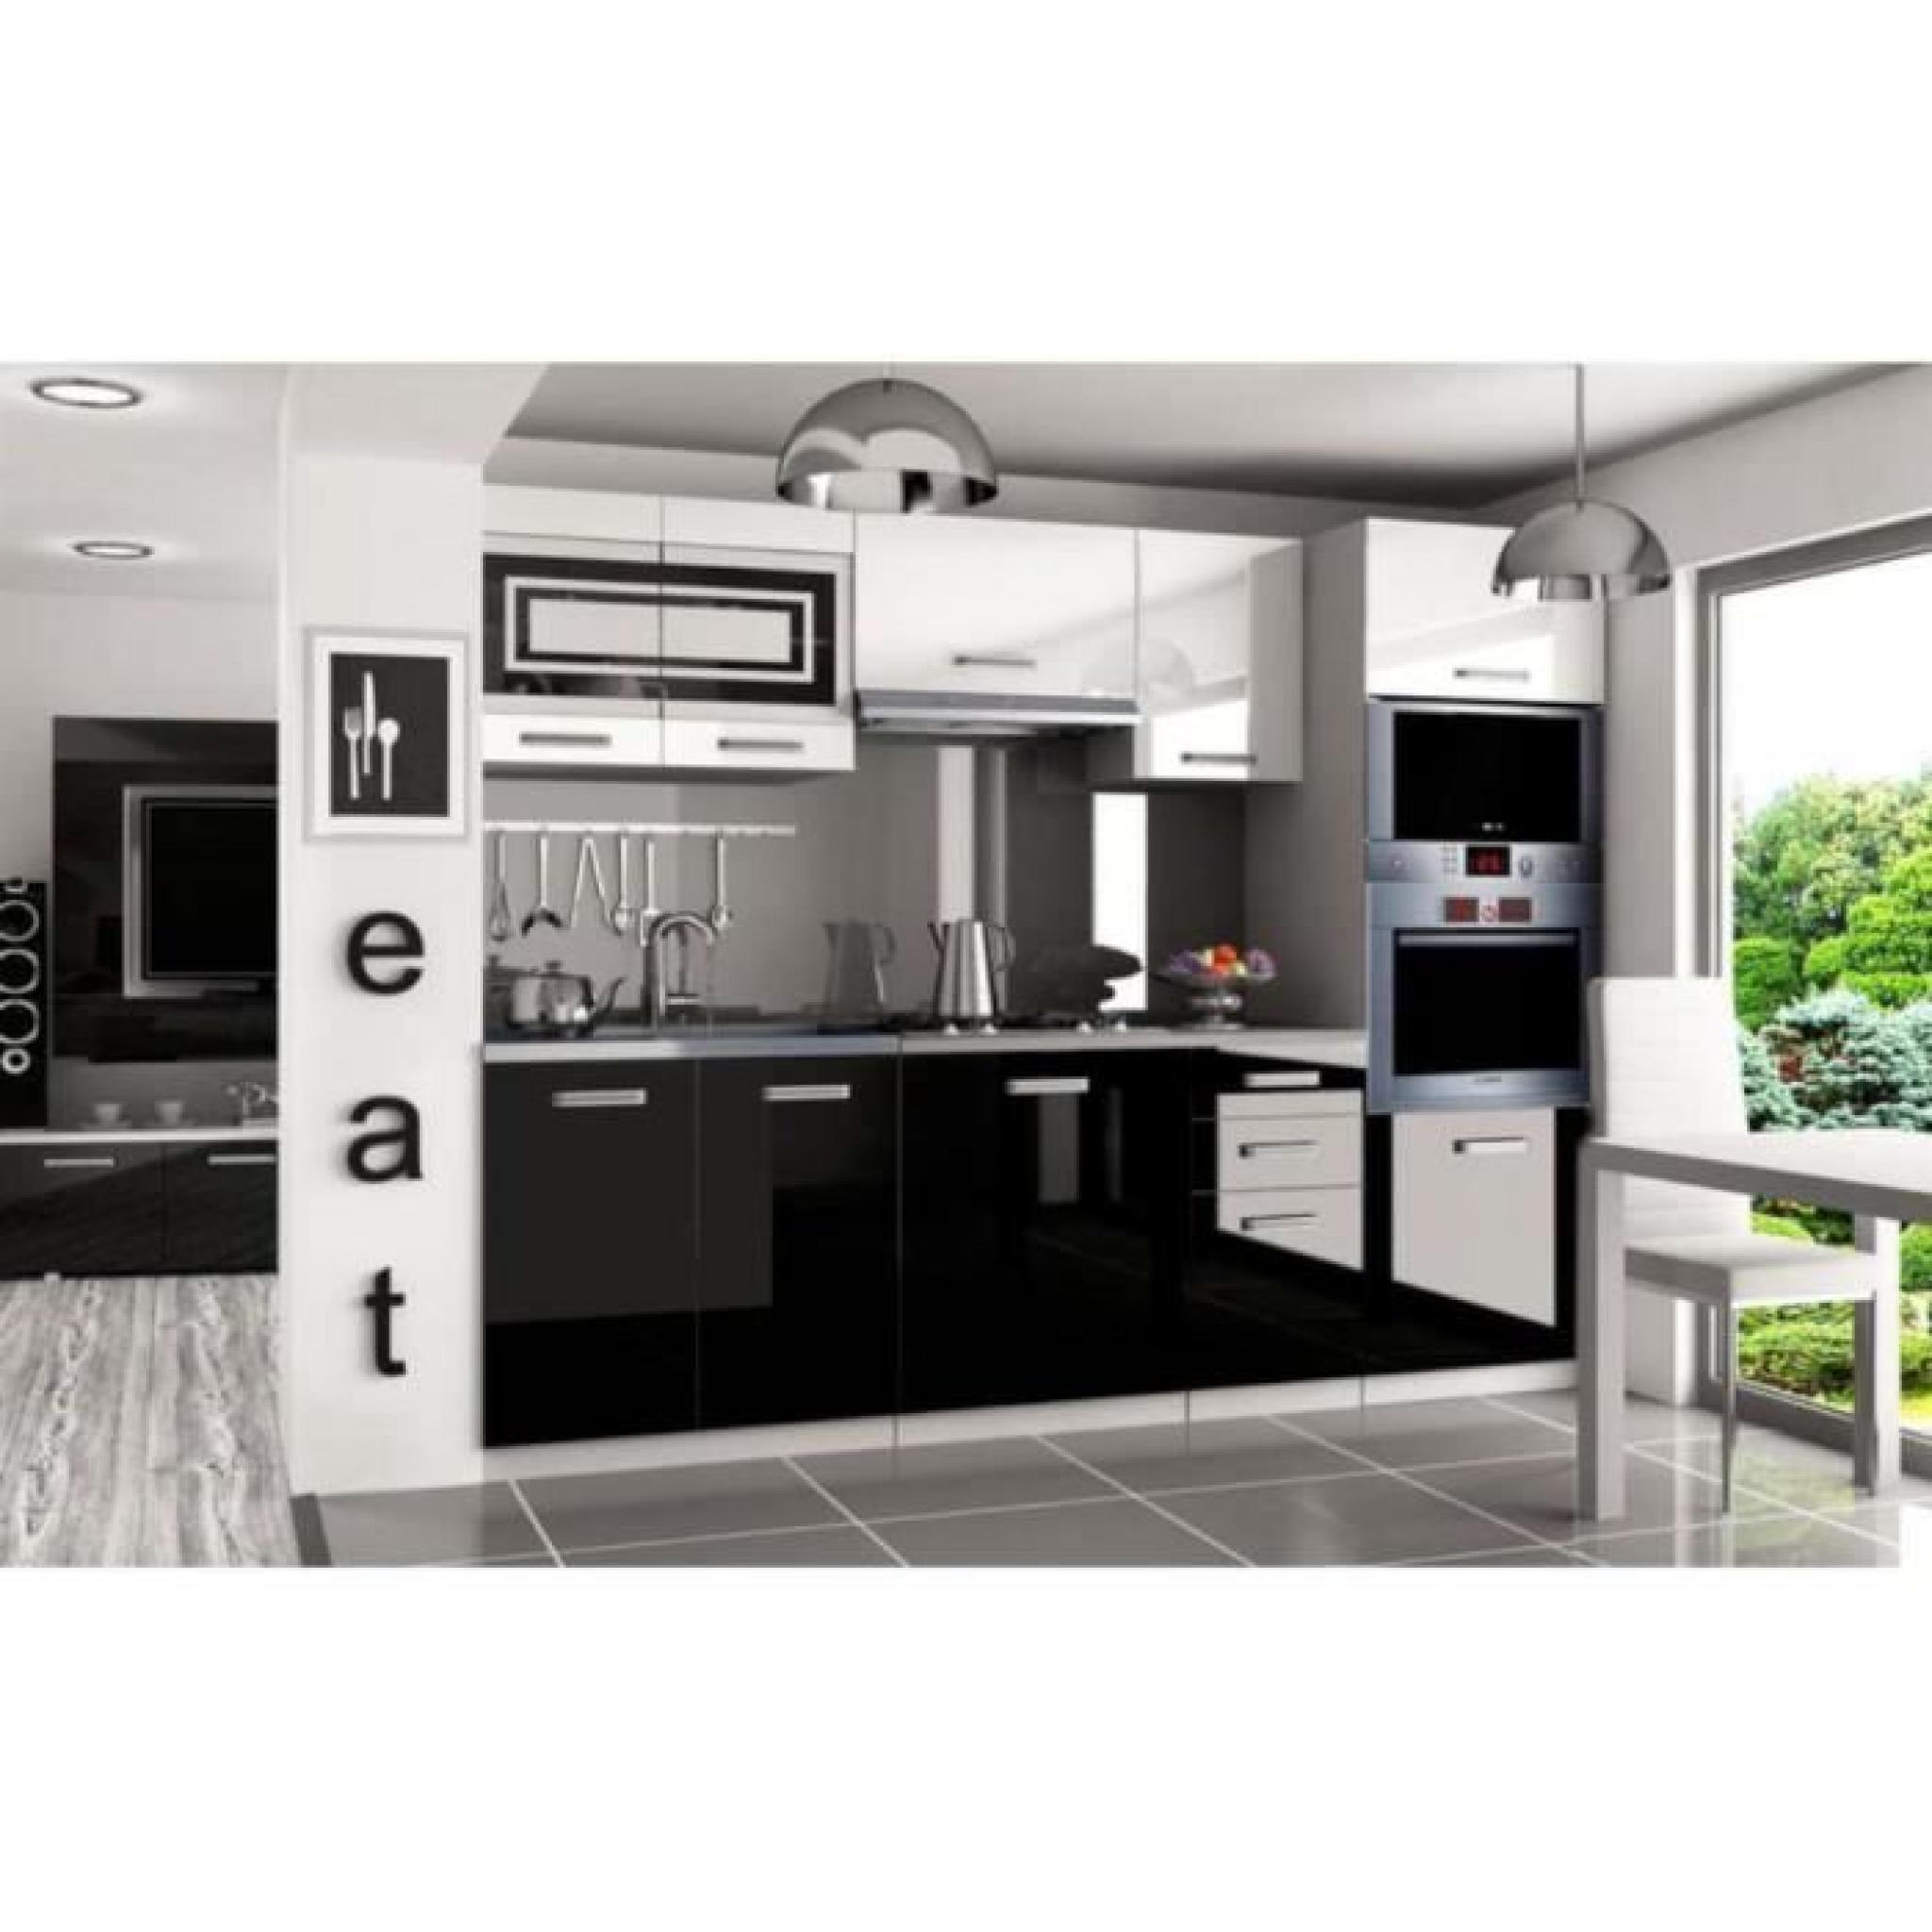 cuisine quipe cdiscount finest meubles de cuisine cuisiniste u cuisine quipe meubles cuisines. Black Bedroom Furniture Sets. Home Design Ideas